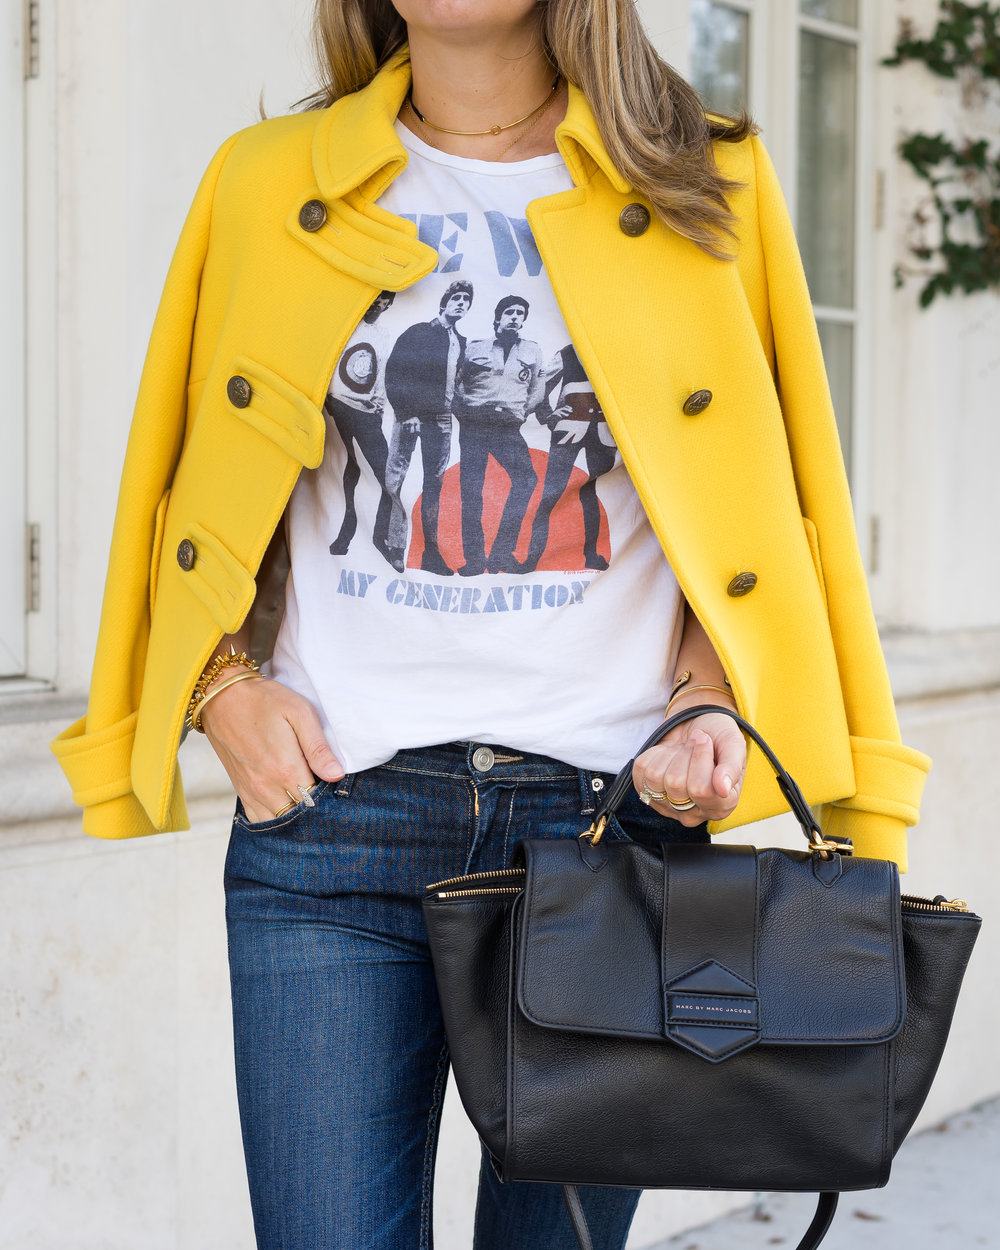 Yellow coat, The Who concert tee